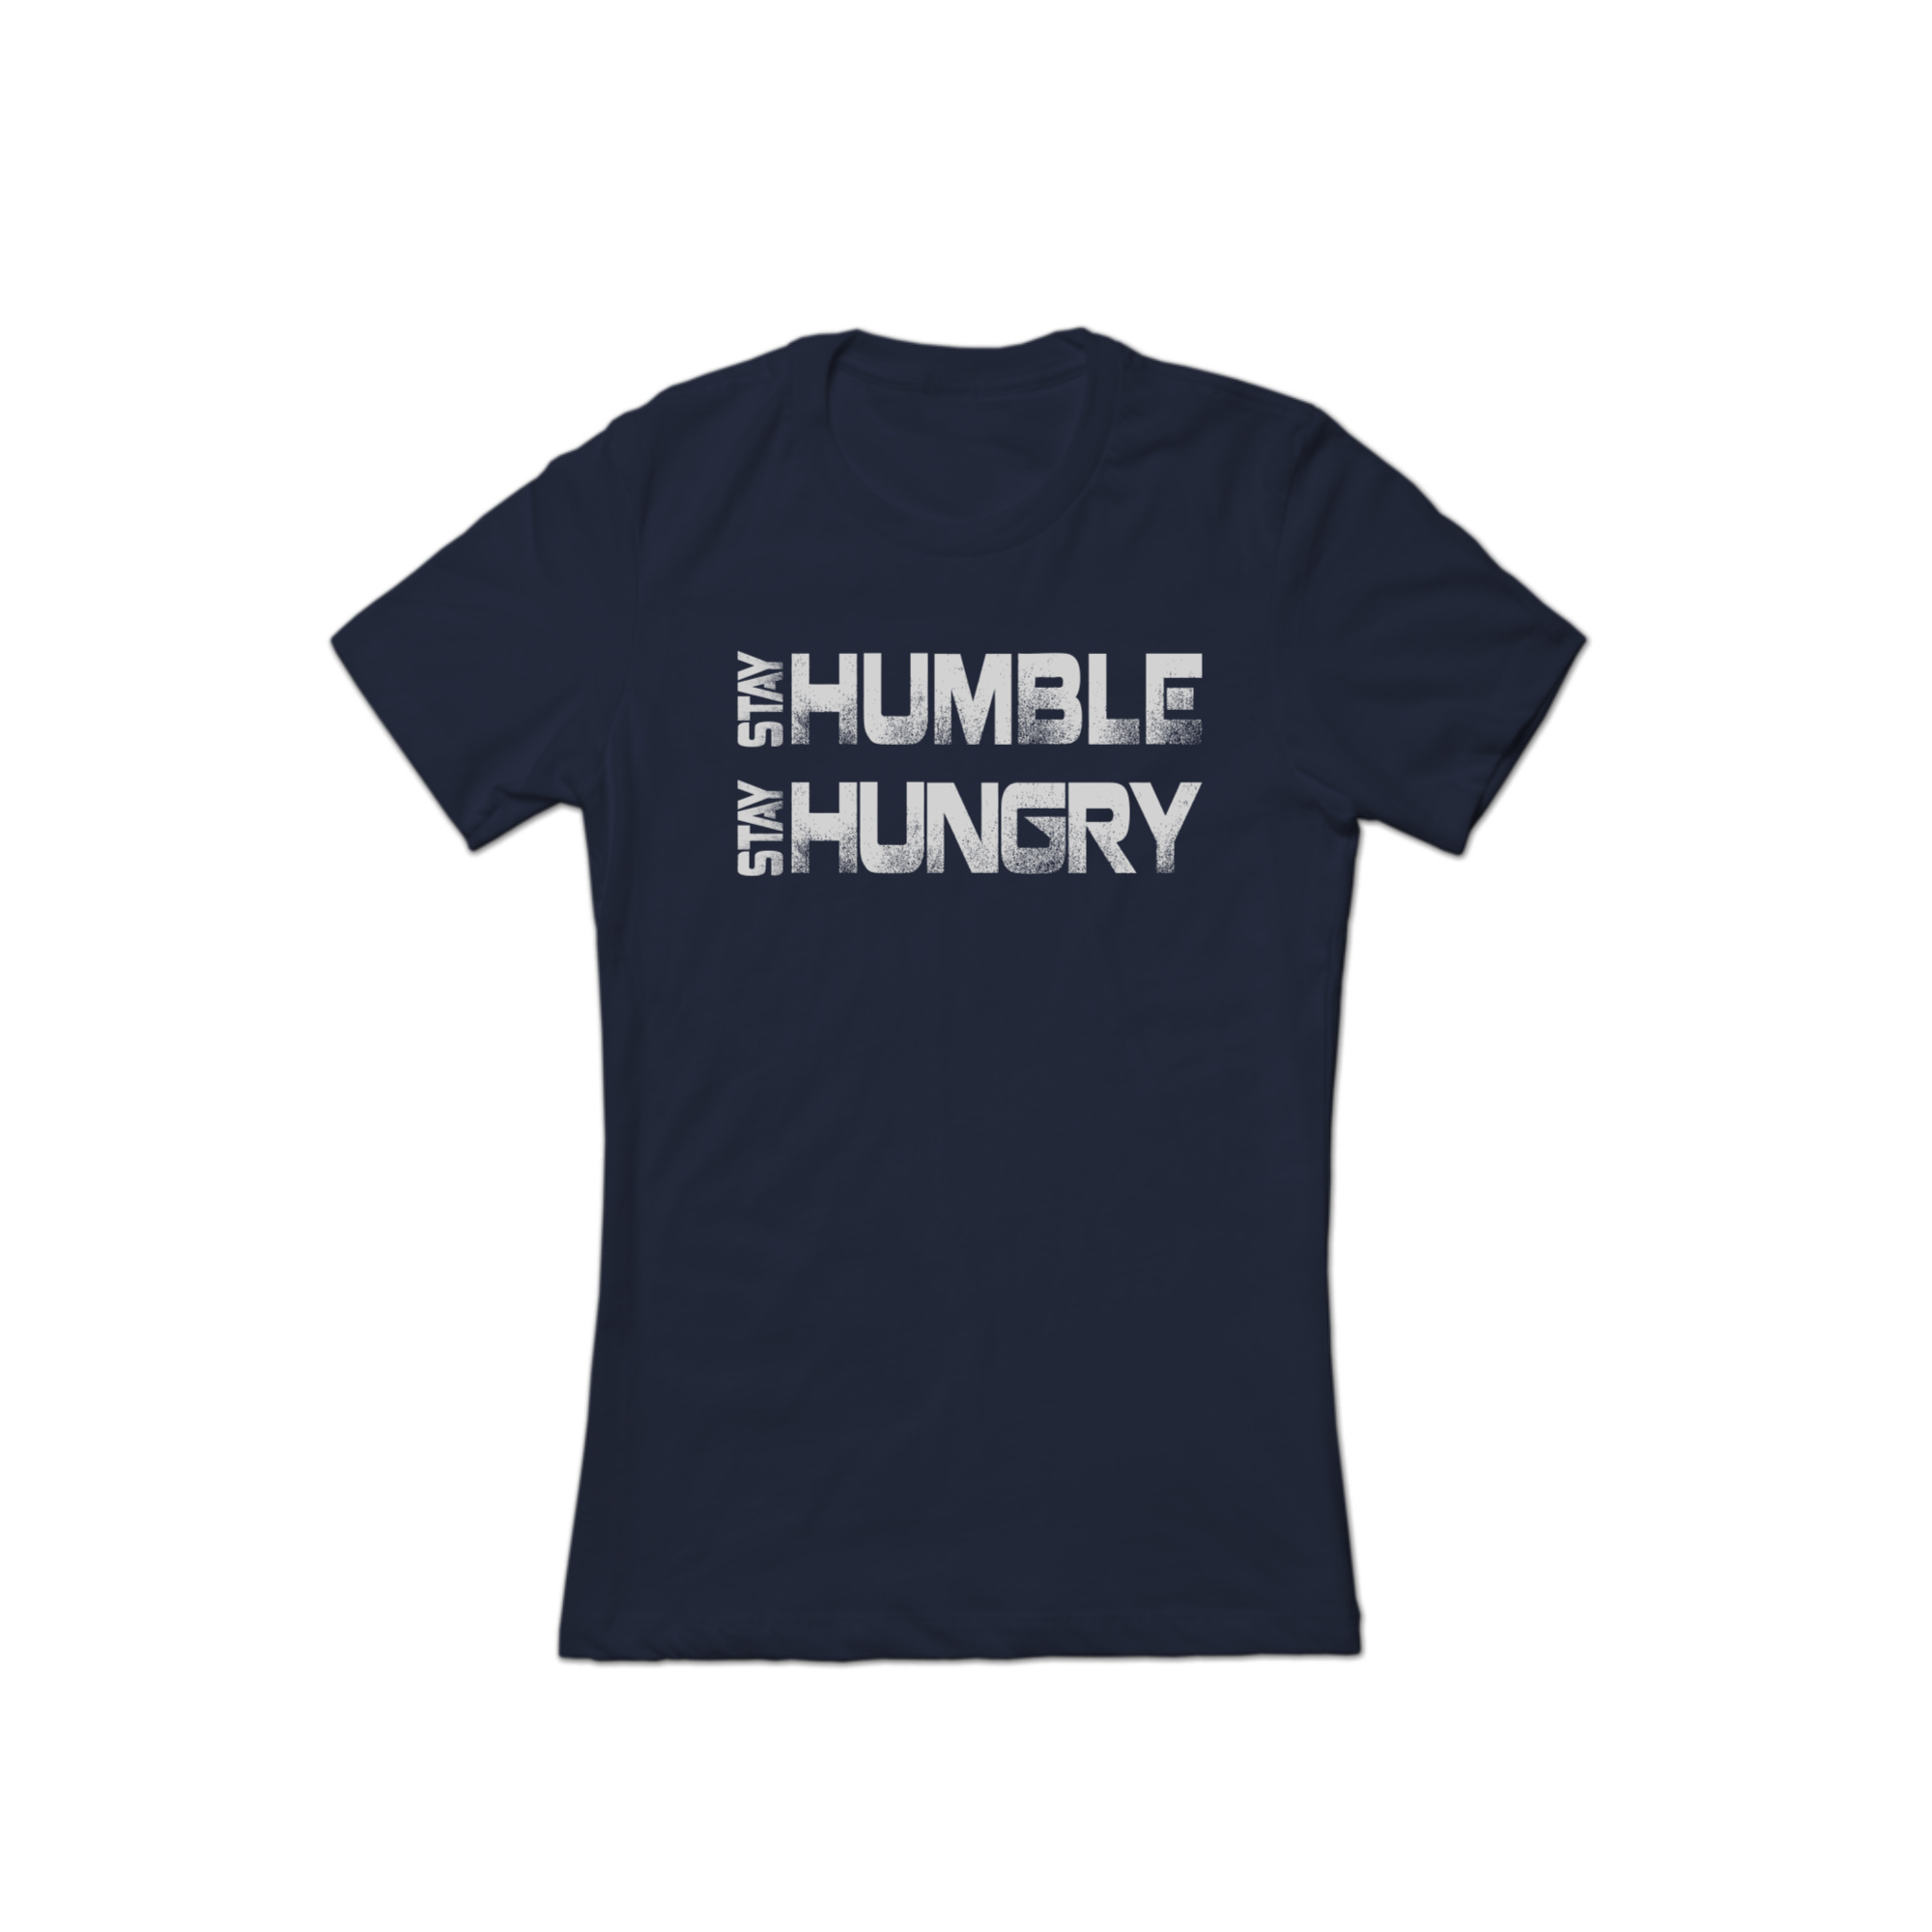 Stay Humble Stay Hungry Tee